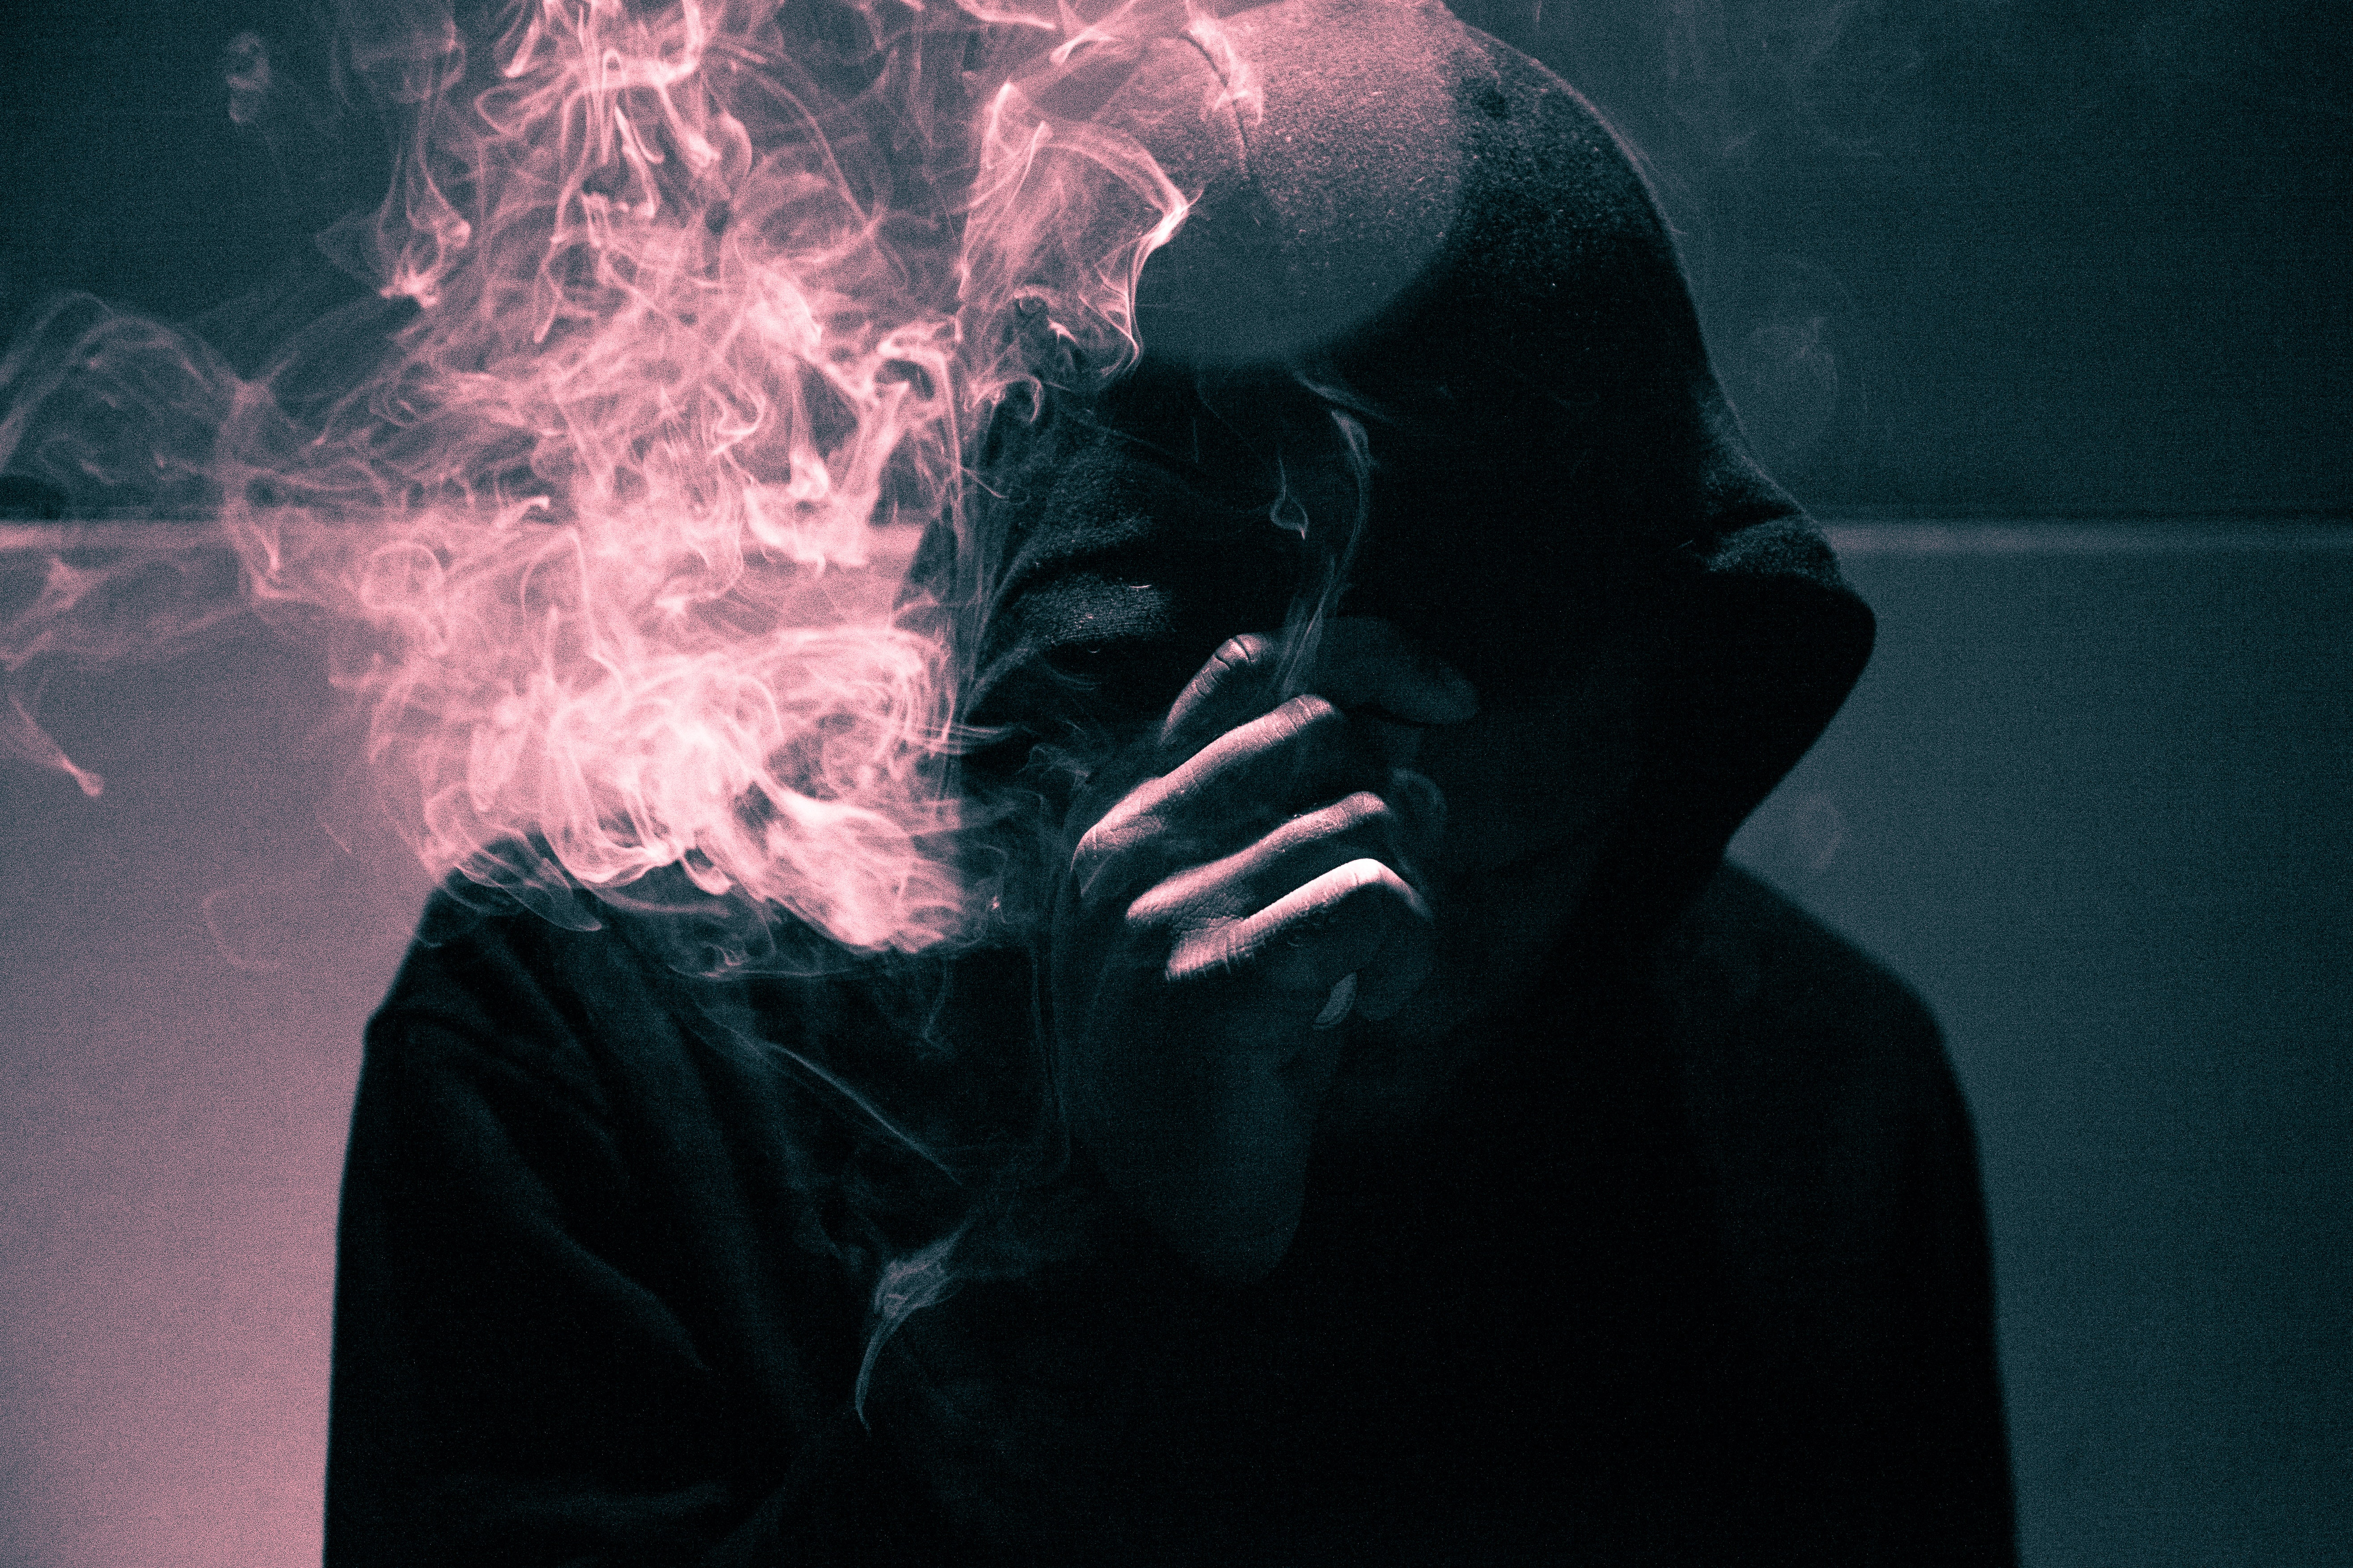 man standing near the wall while smoking